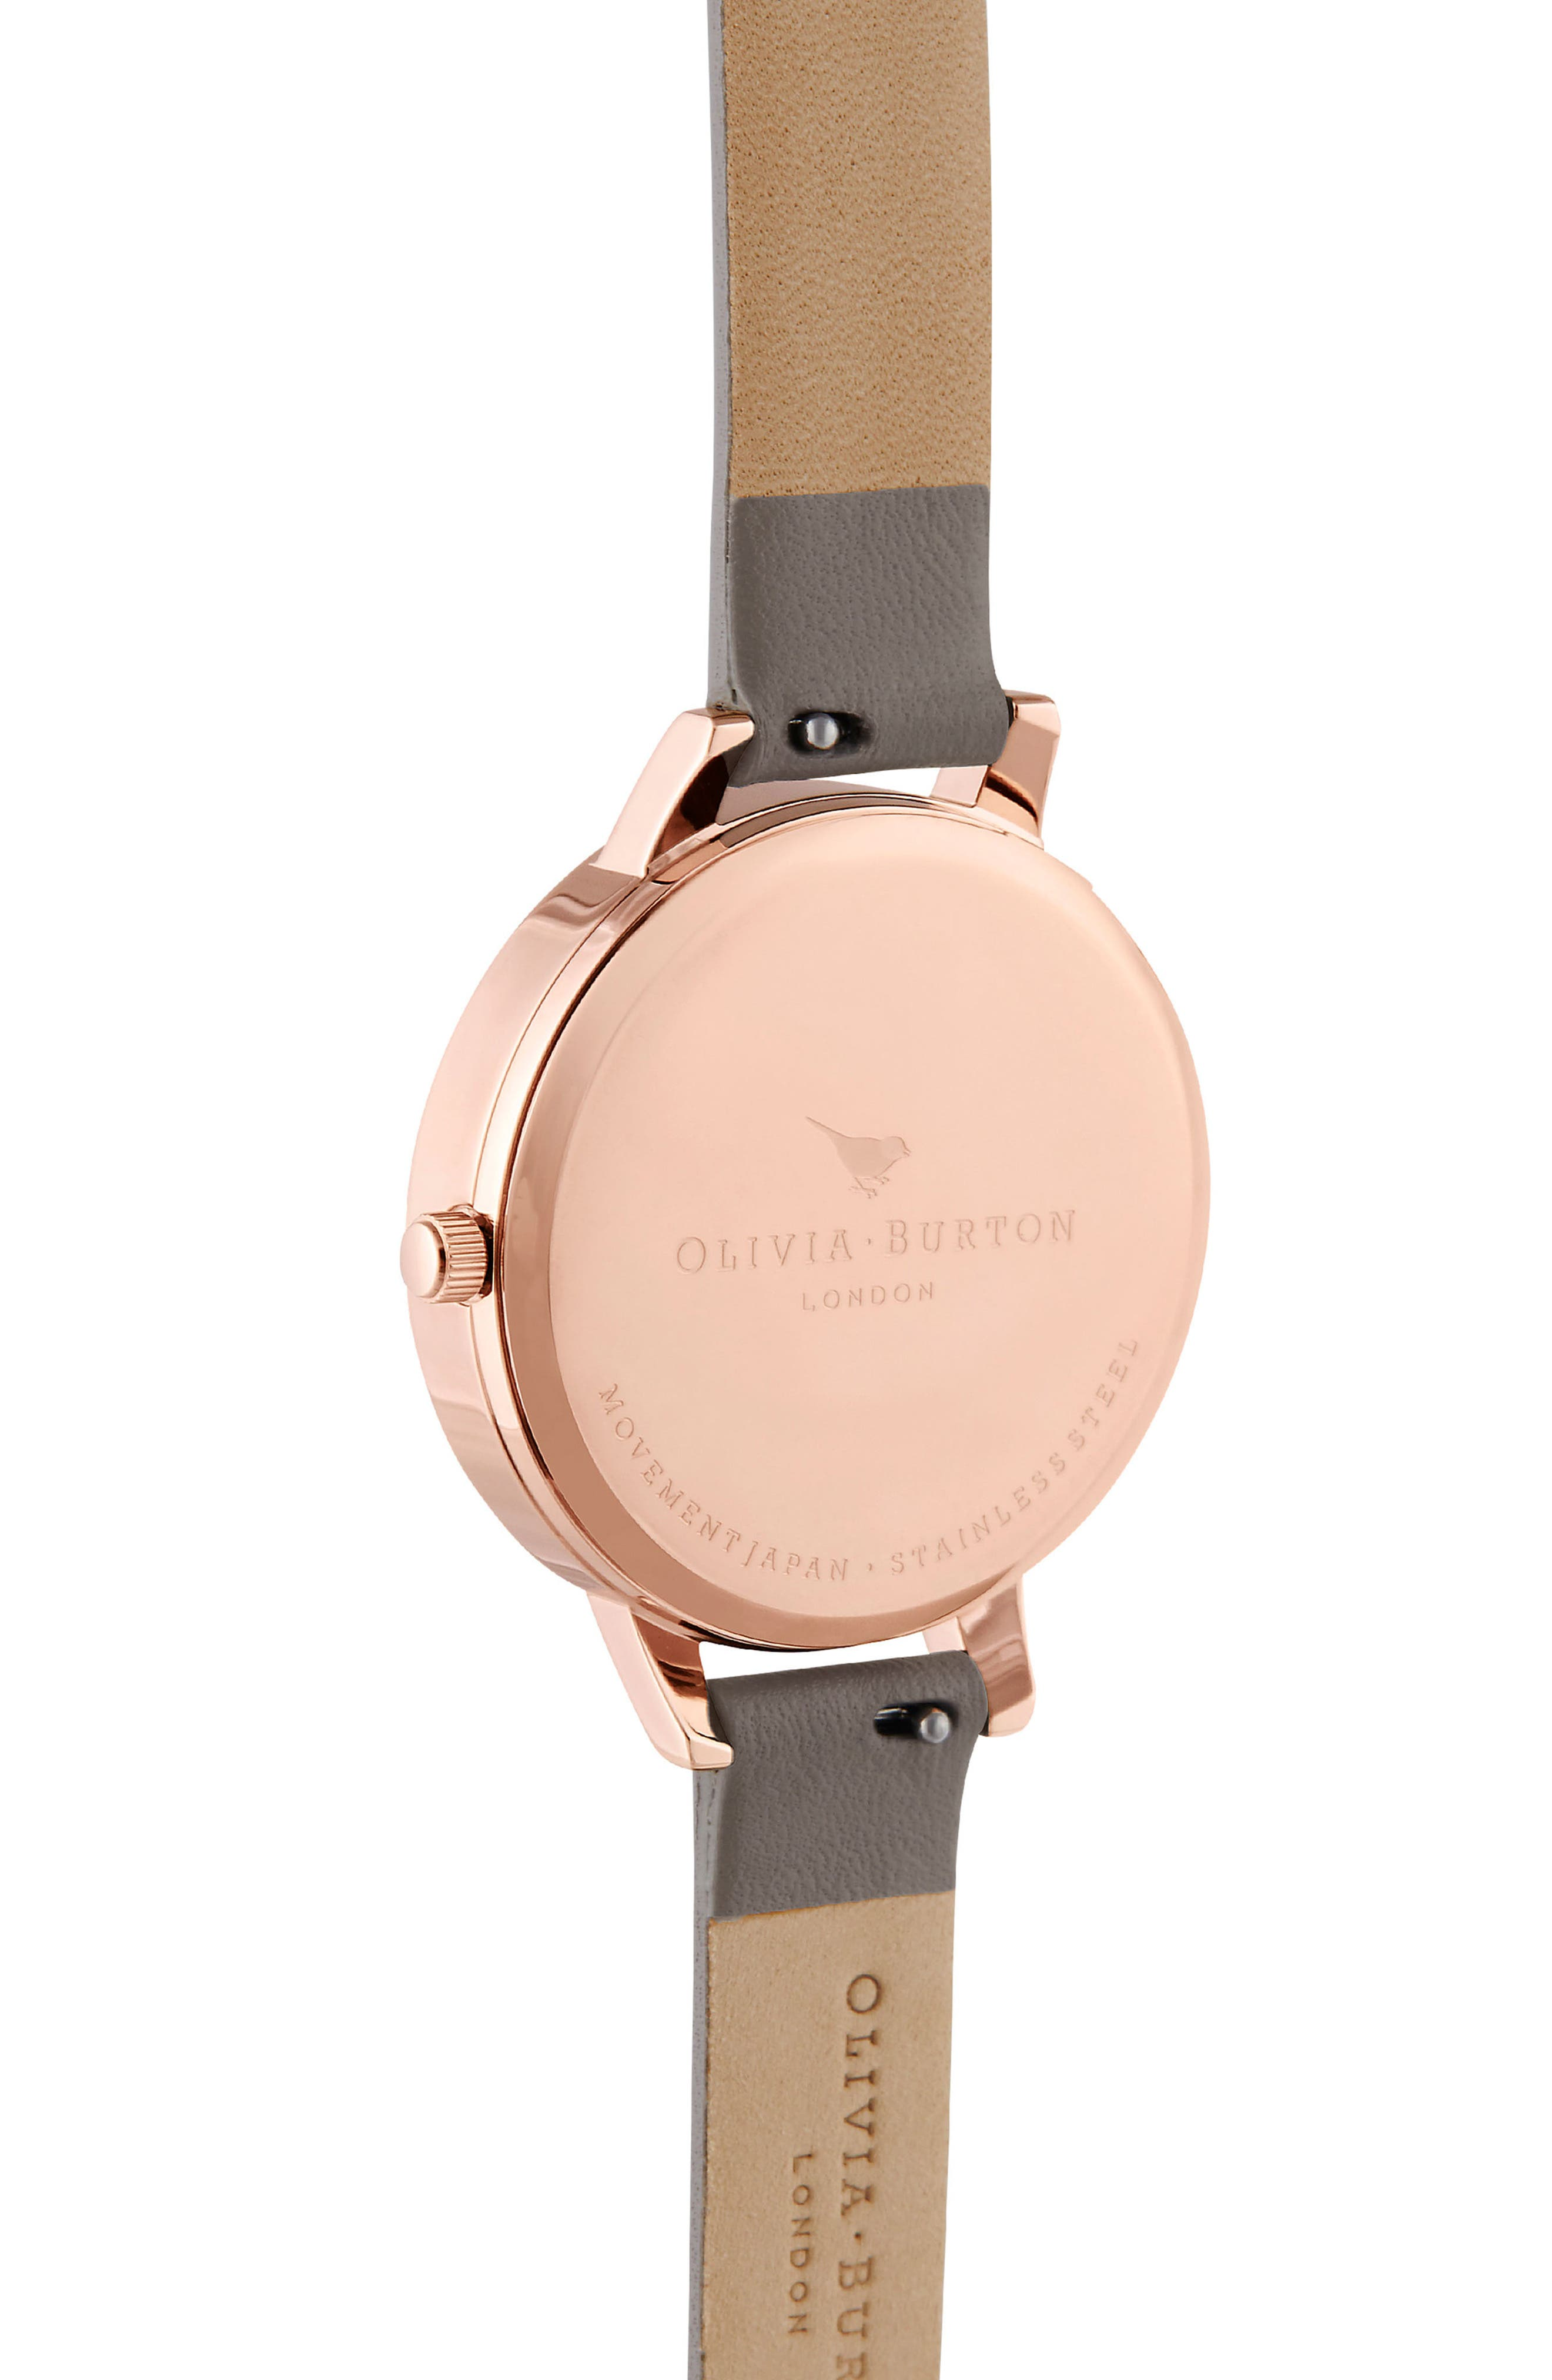 OLIVIA BURTON, Pretty Blossom Leather Strap Watch, 34mm, Alternate thumbnail 3, color, GREY / WHITE/ ROSE GOLD